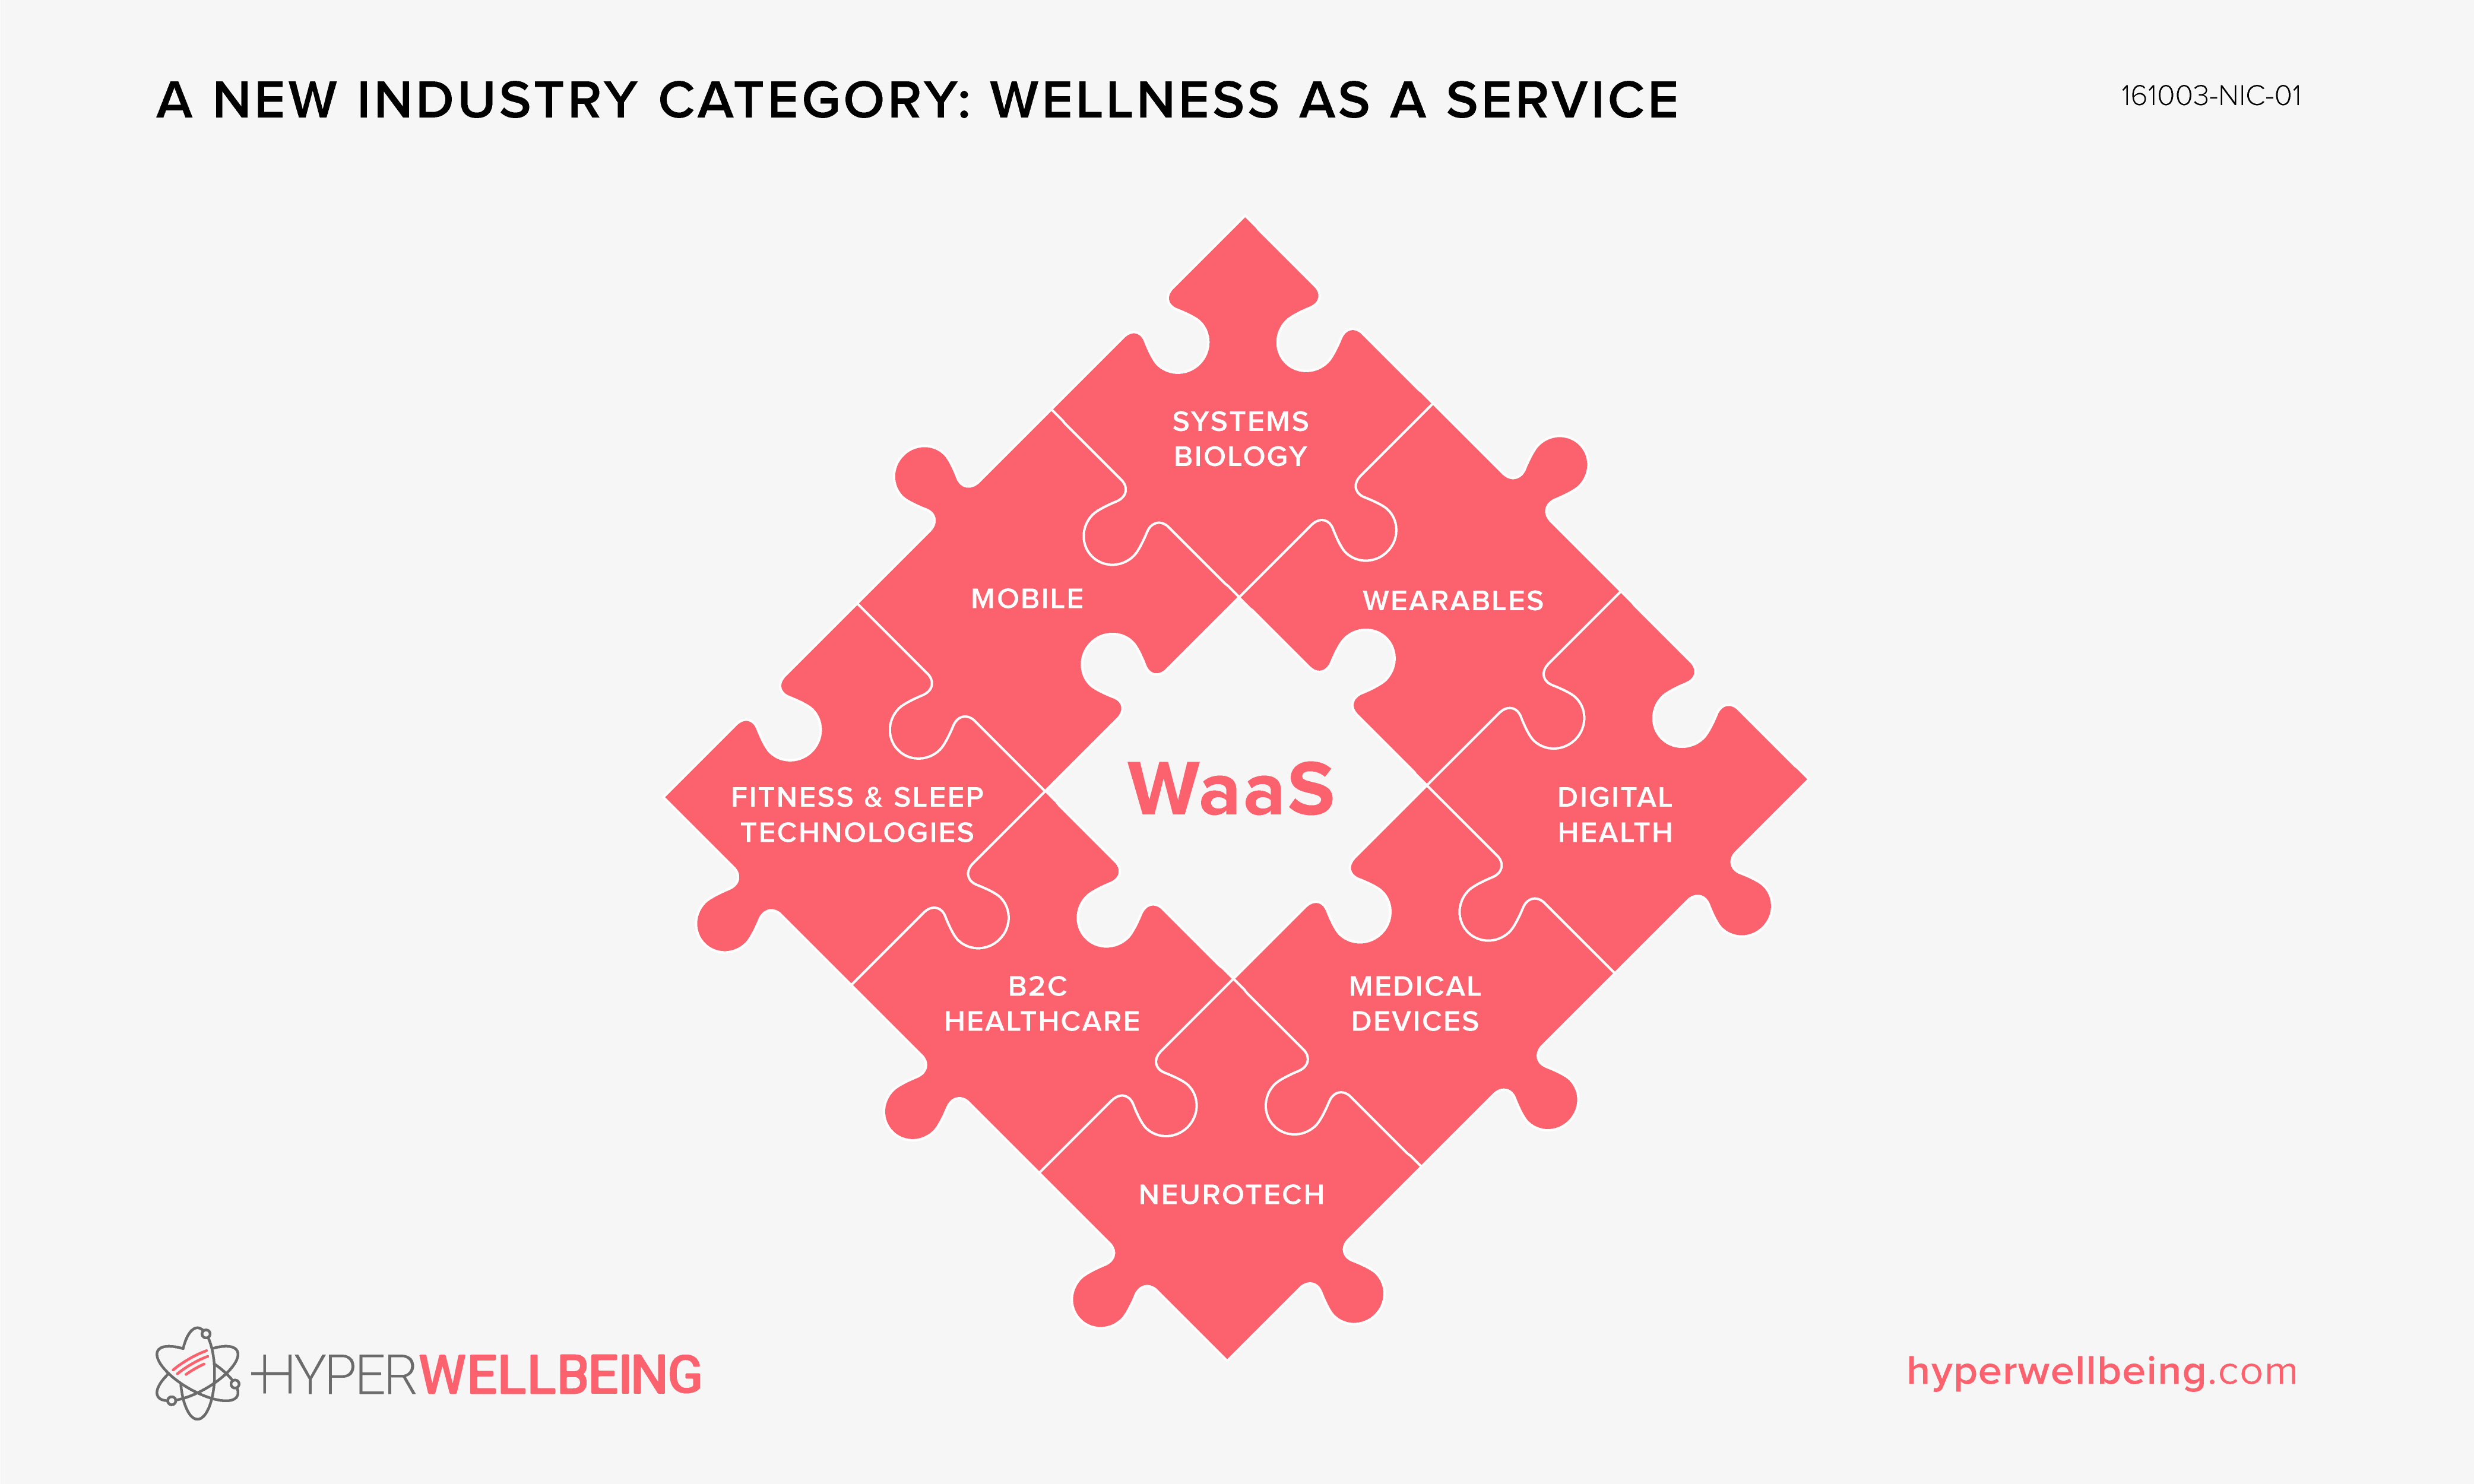 A New Industry Category: Wellness as a Service